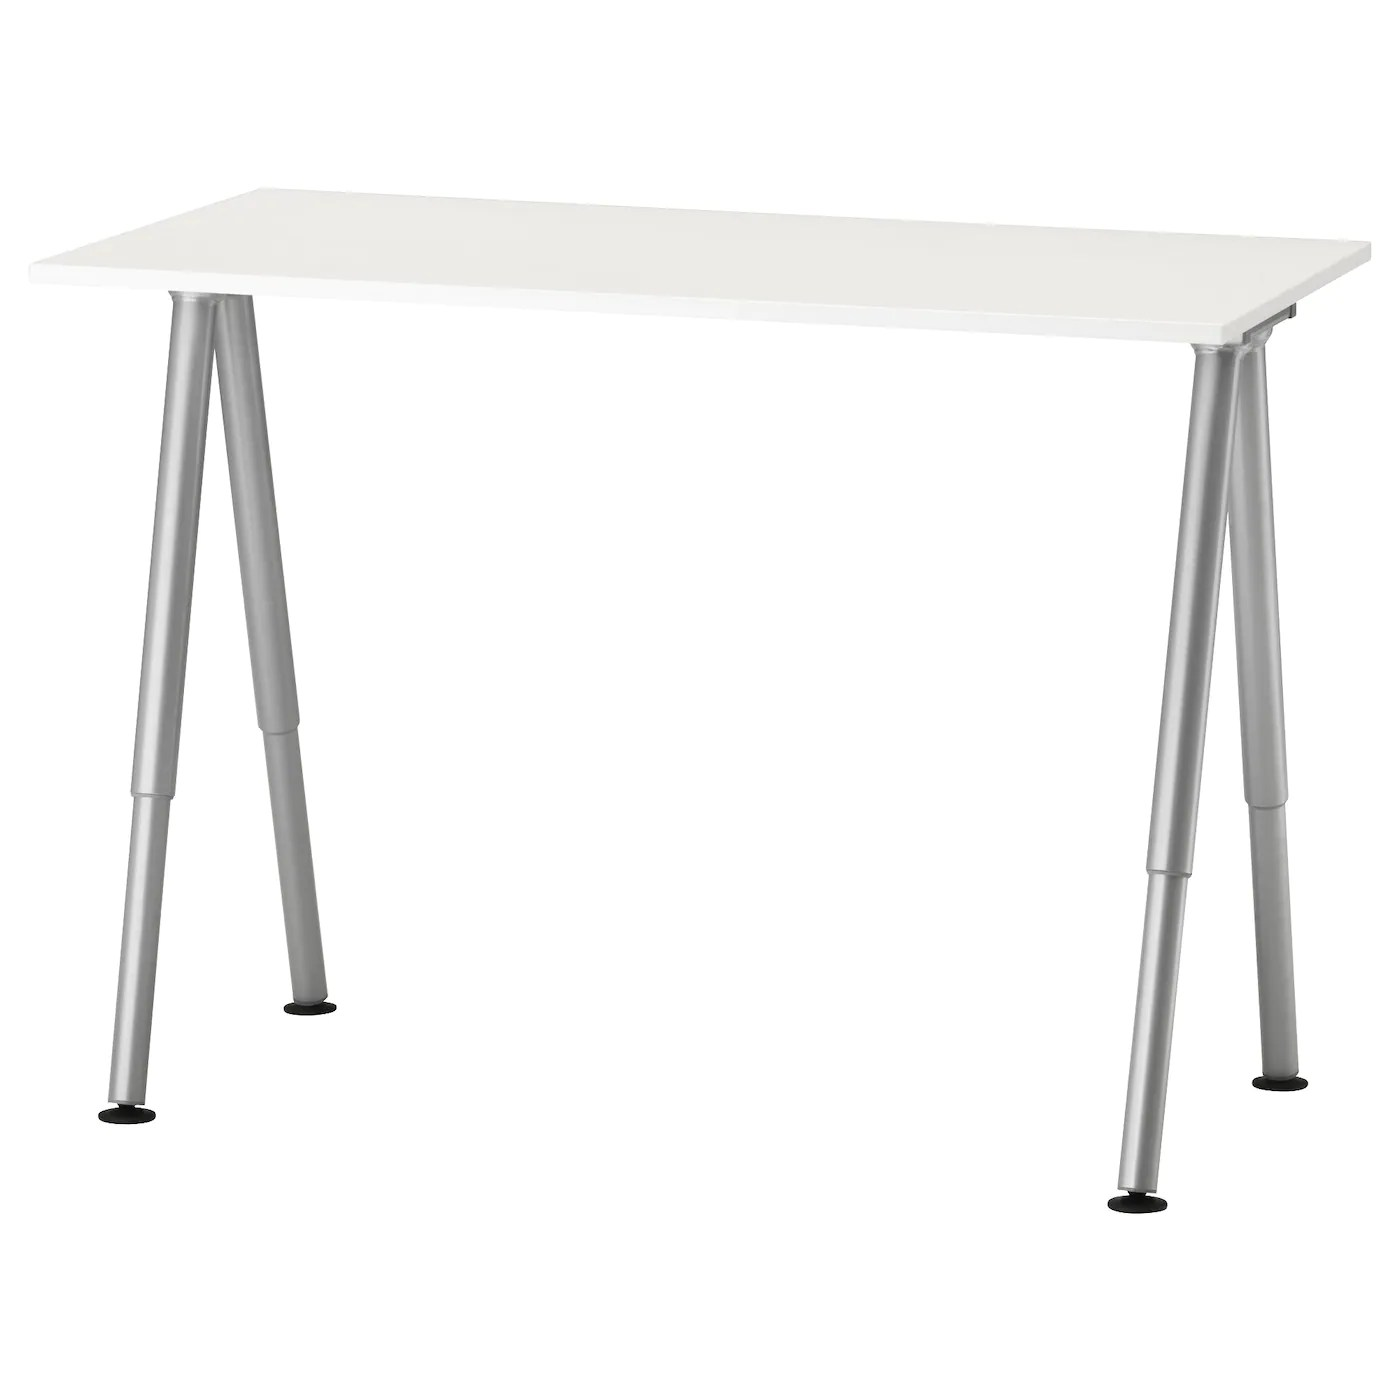 Ikea Galant Bureau Thyge Desk White Silver Color